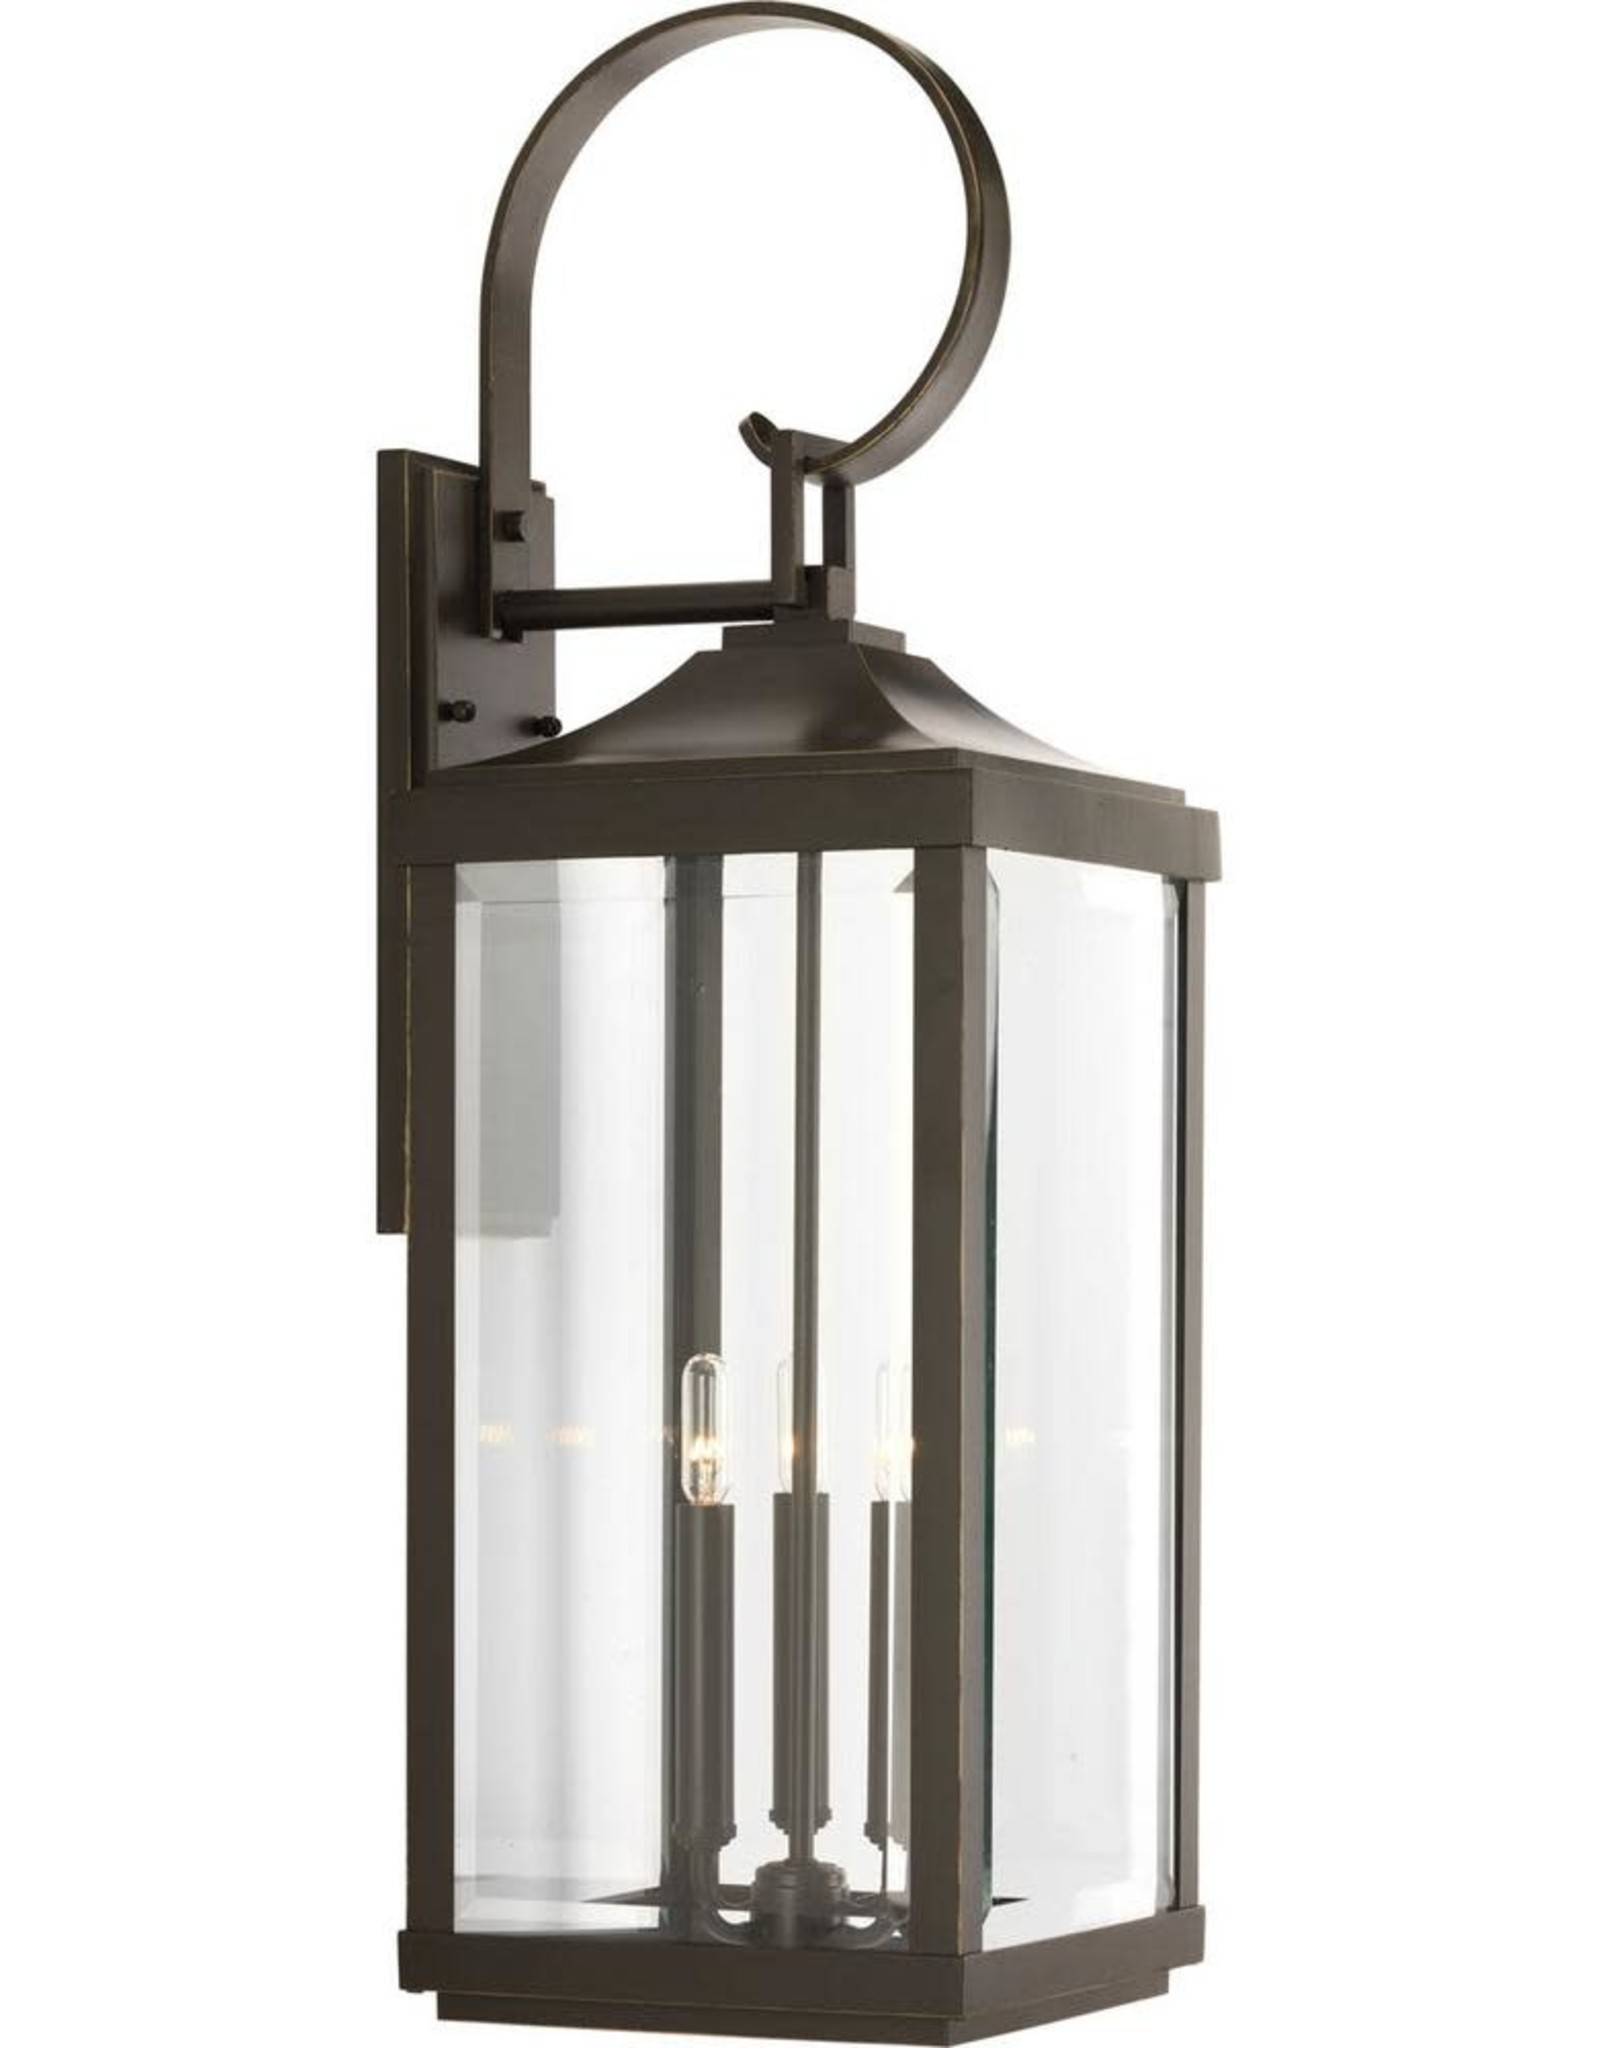 Gibbes Street Collection 3-Light Antique Bronze 30.6 in. Outdoor Wall Lantern Sconce